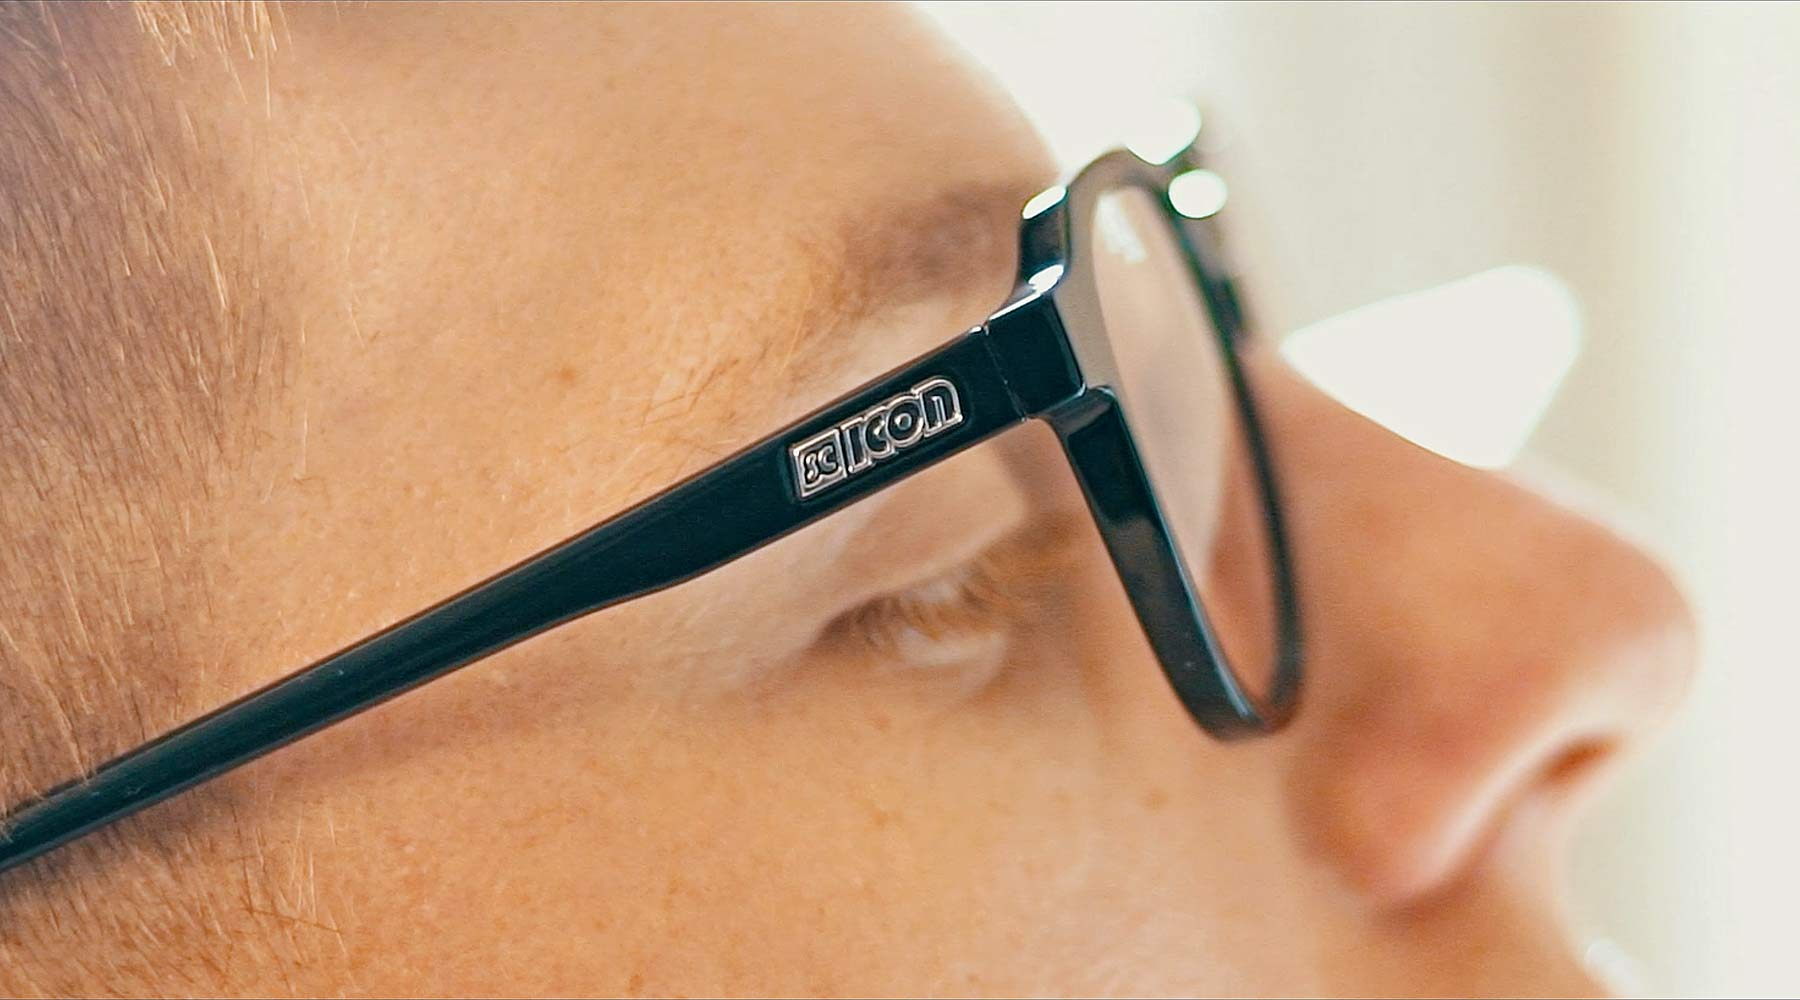 Scicon Blue Zero glasses aid recovery, not when riding, but staring at screens post-ride